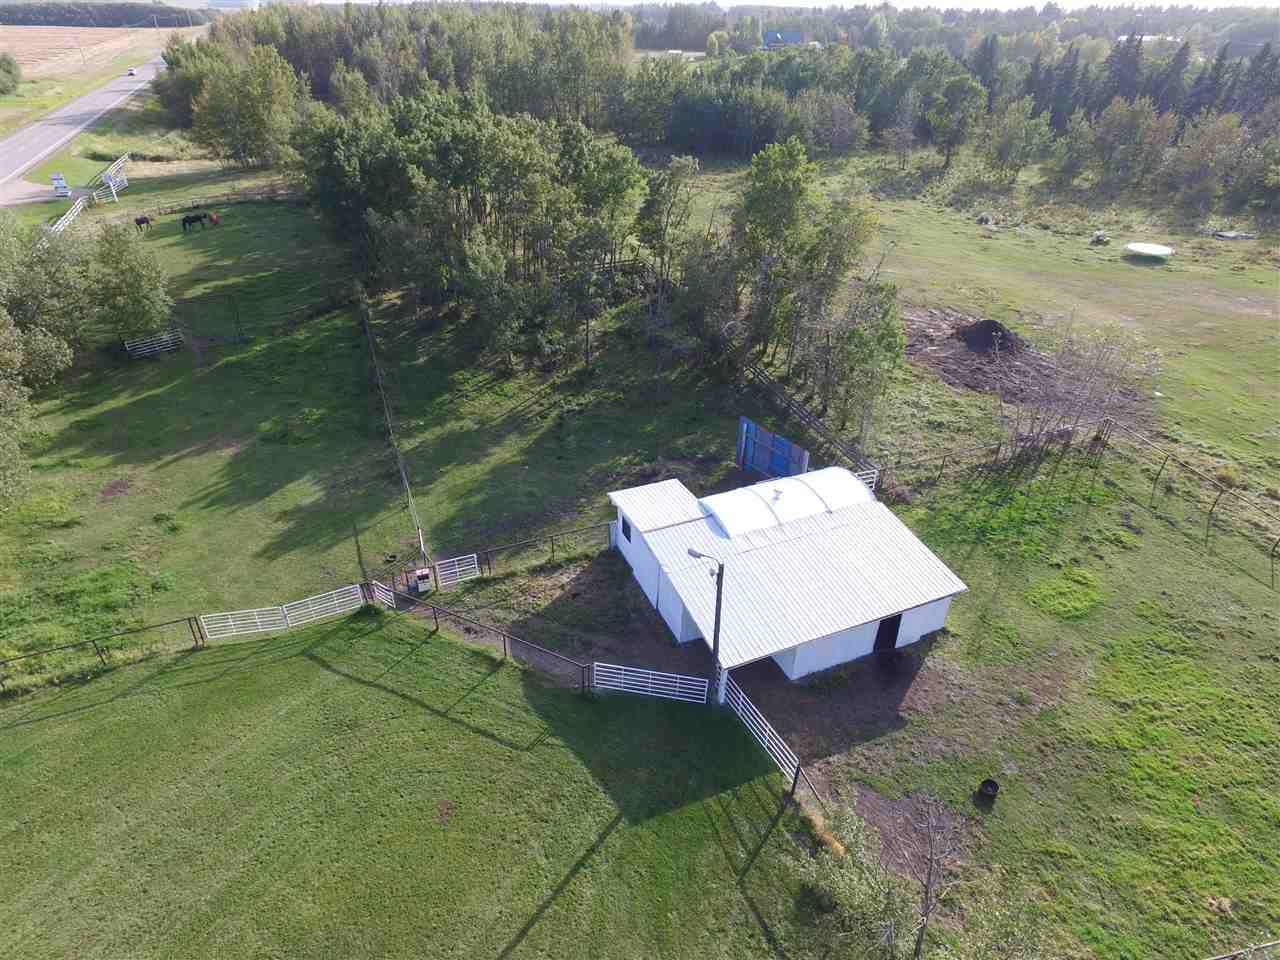 Photo 16: Photos: 472050A Hwy 814: Rural Wetaskiwin County House for sale : MLS®# E4213442